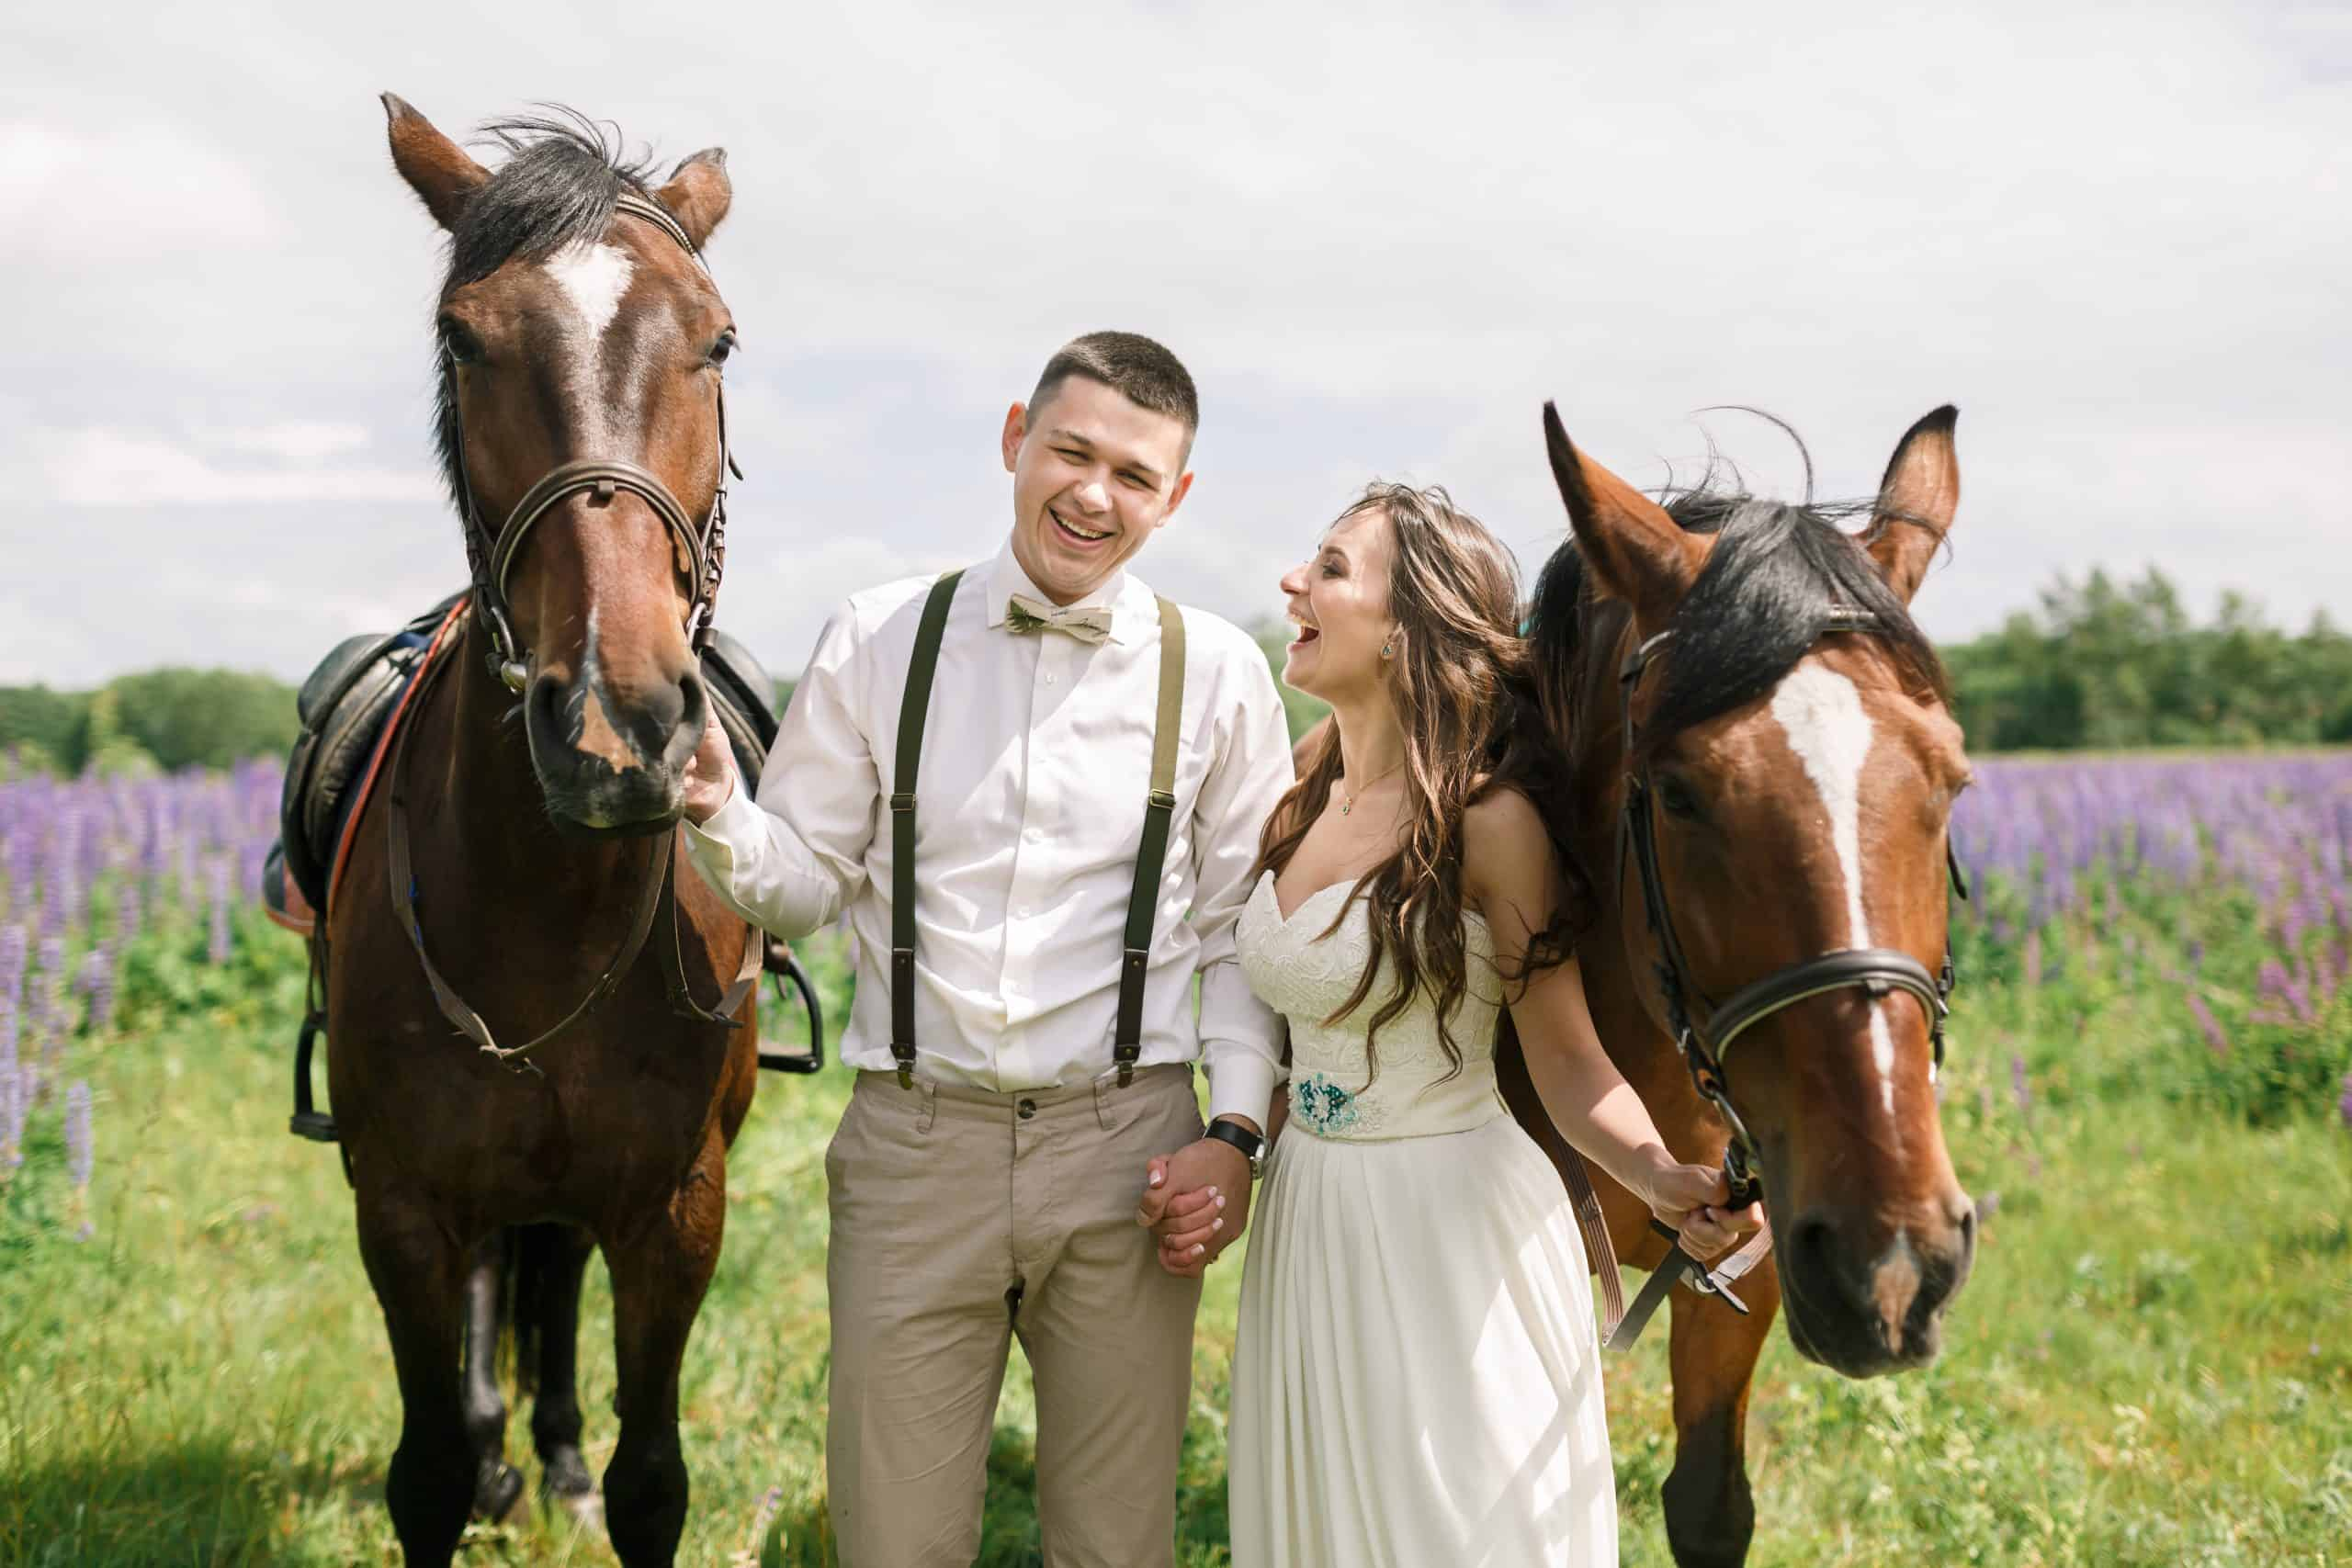 Happy wedding couple standing with horses on a field of lupine